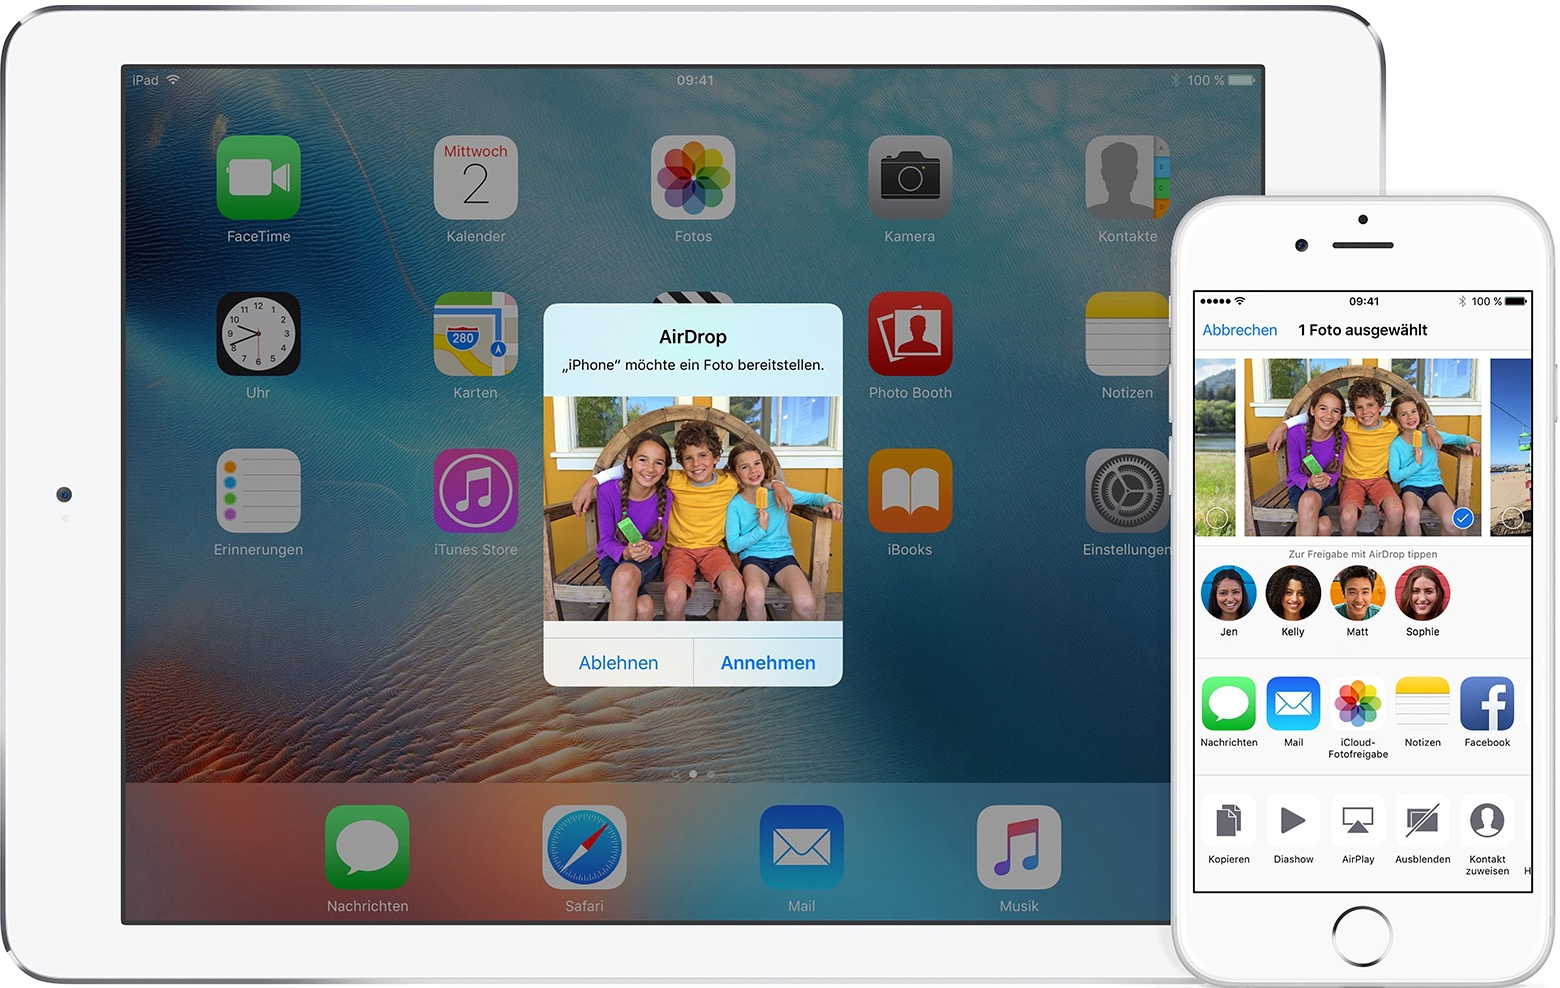 how to use airdrop iphone to macbook